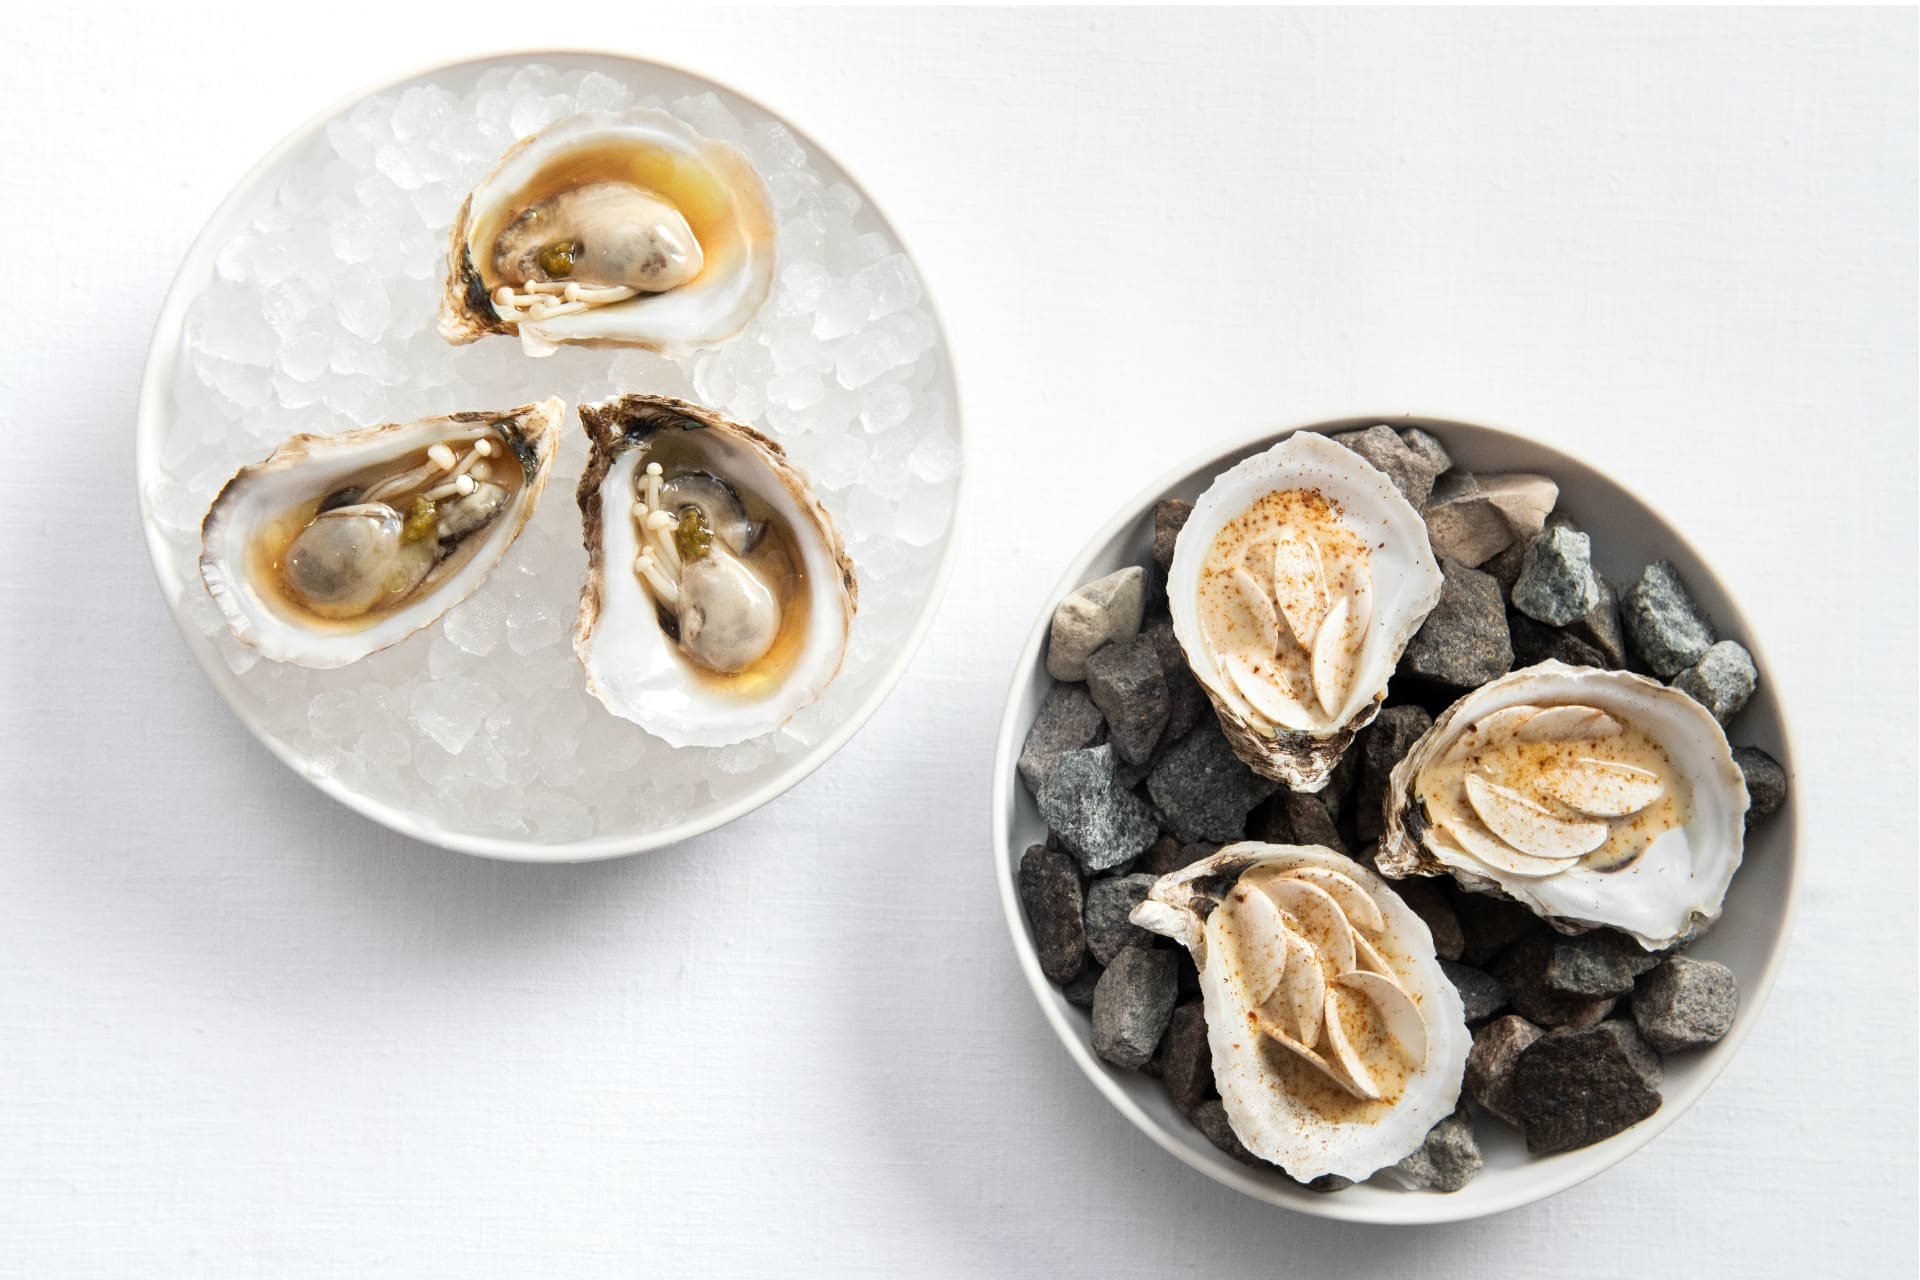 Hot and cold oysters